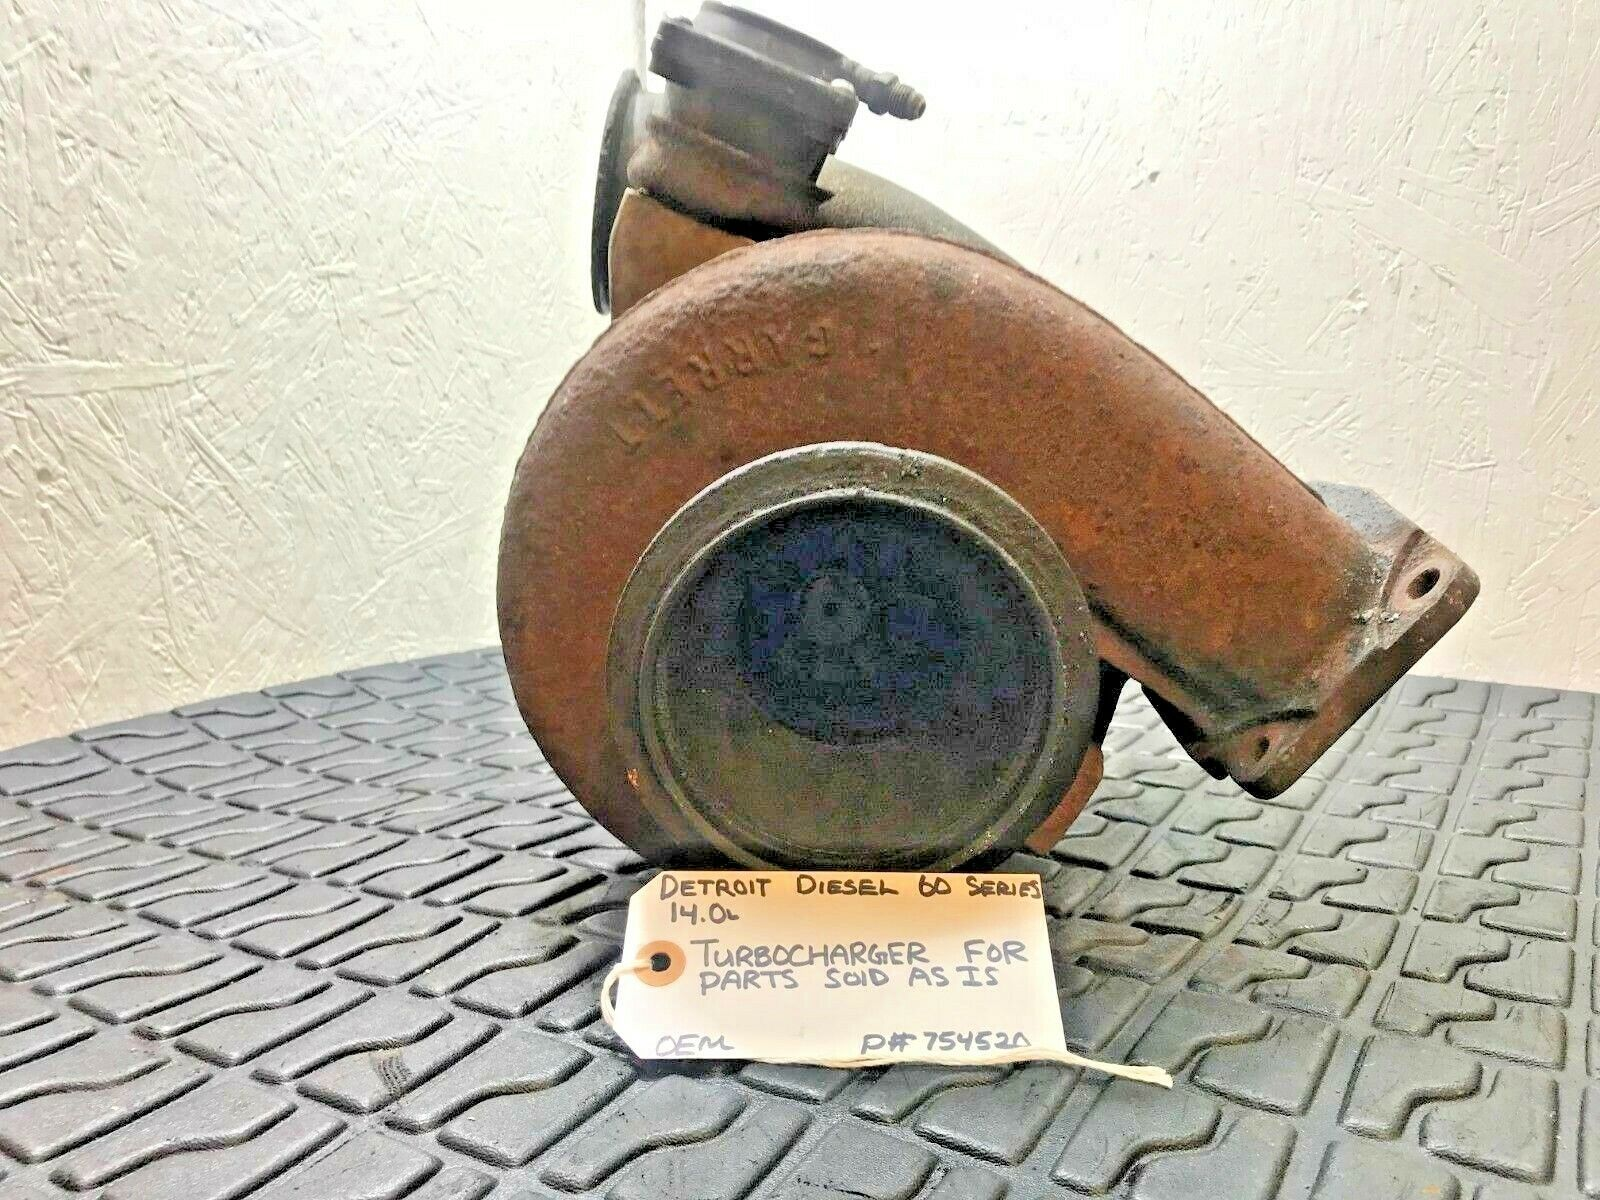 FOR PARTS ONLY Detroit Diesel Series 60 12.7 GARRETT Turbocharger 754520 OEM image 7